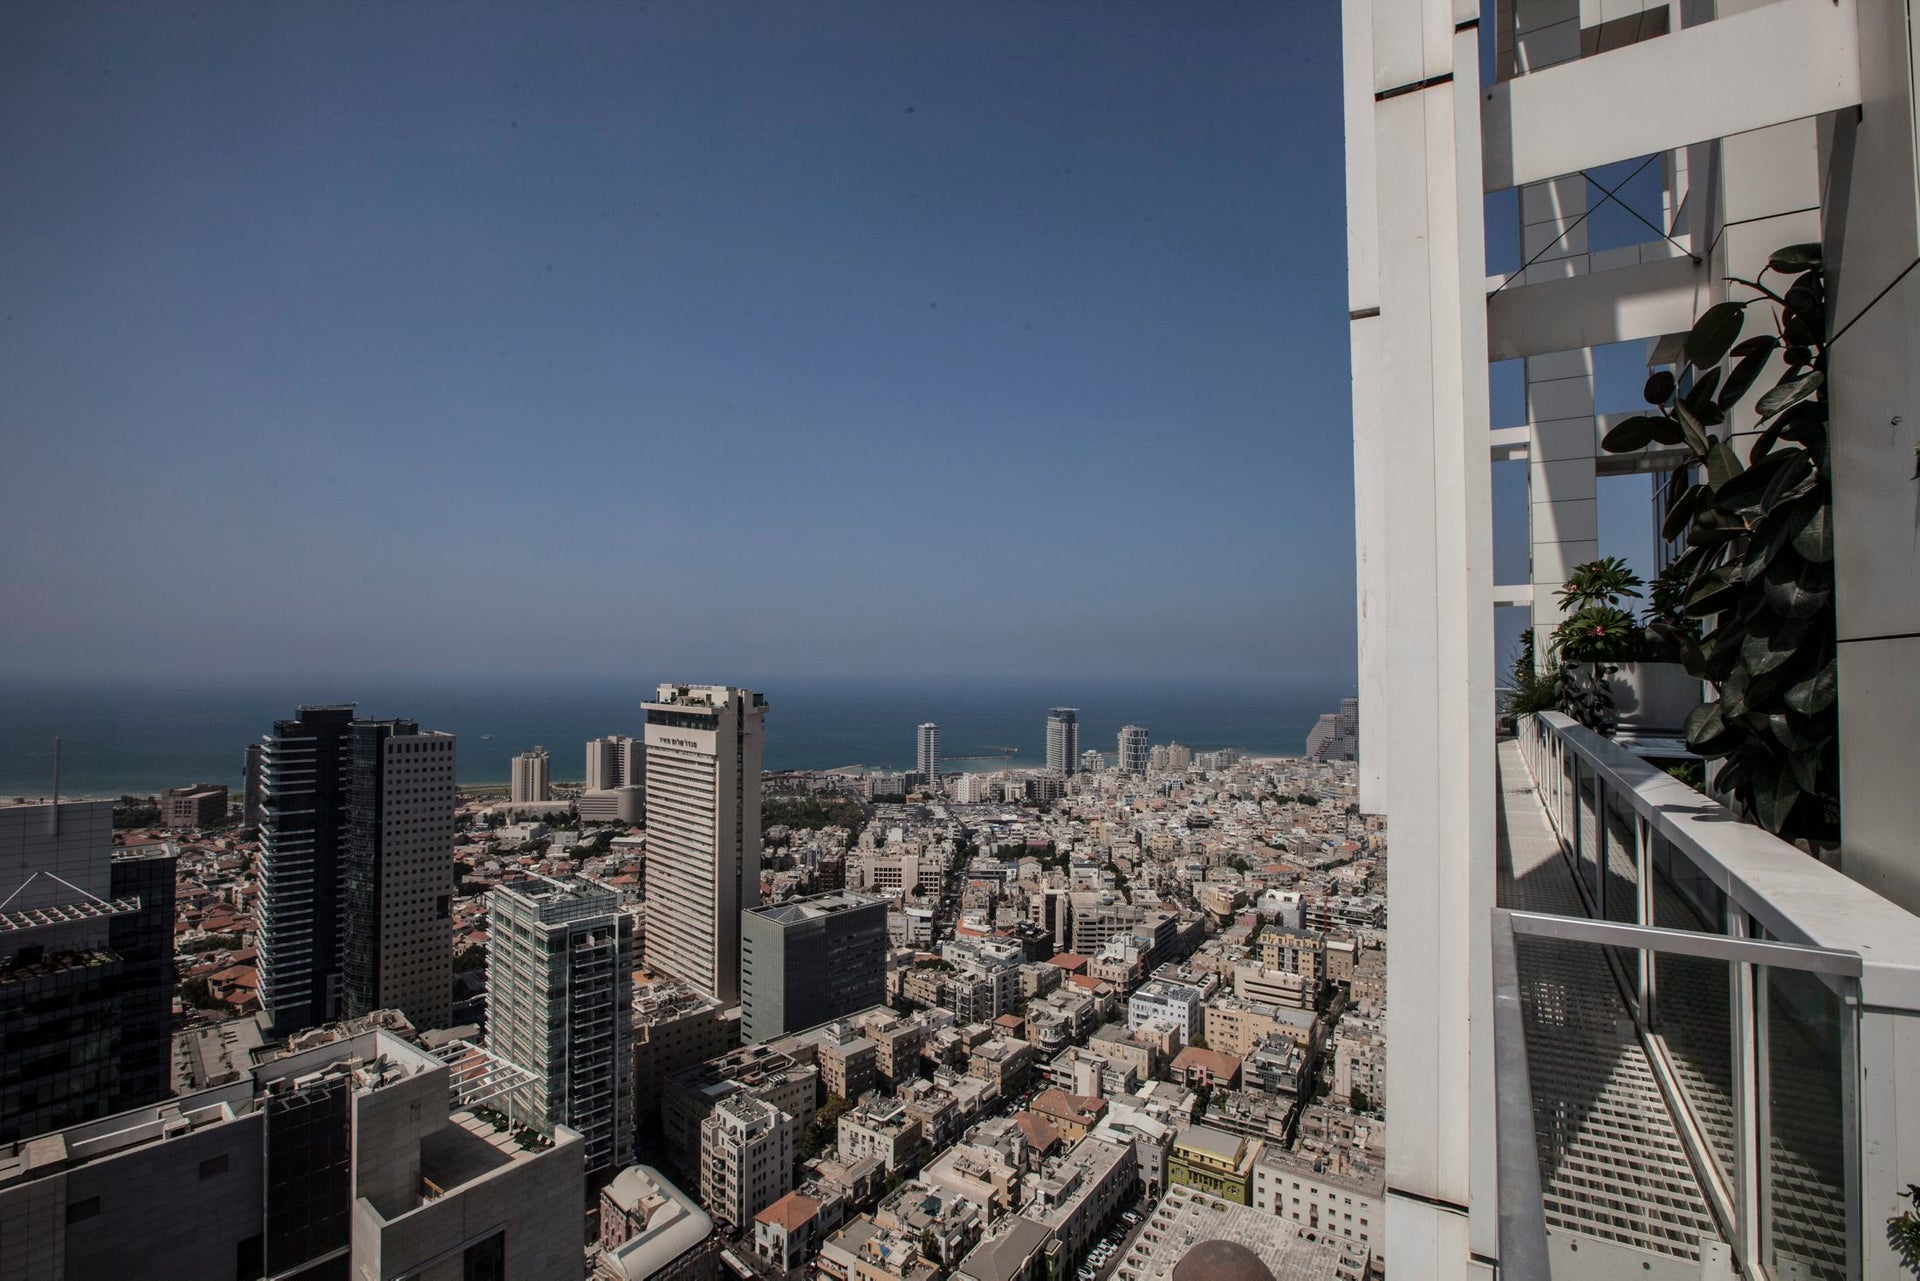 ROOM WITH A VIEW: Looking westward from Richard Meier's Rothschild Tower in Tel Aviv.